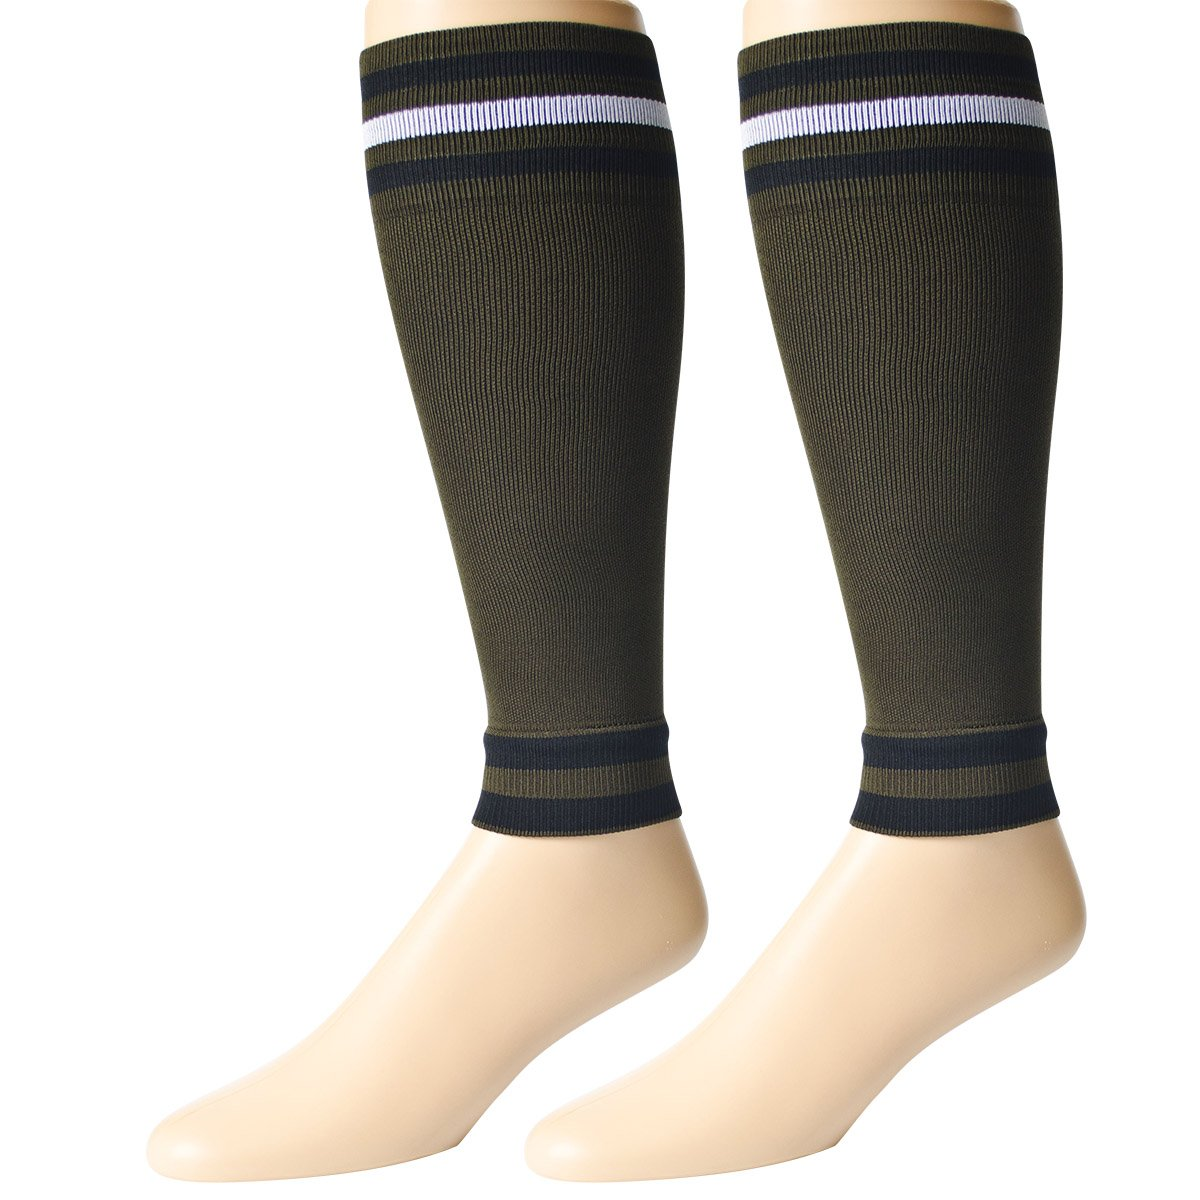 LegHers Couture Leg Warmers - Women's Compression Leg Warmers